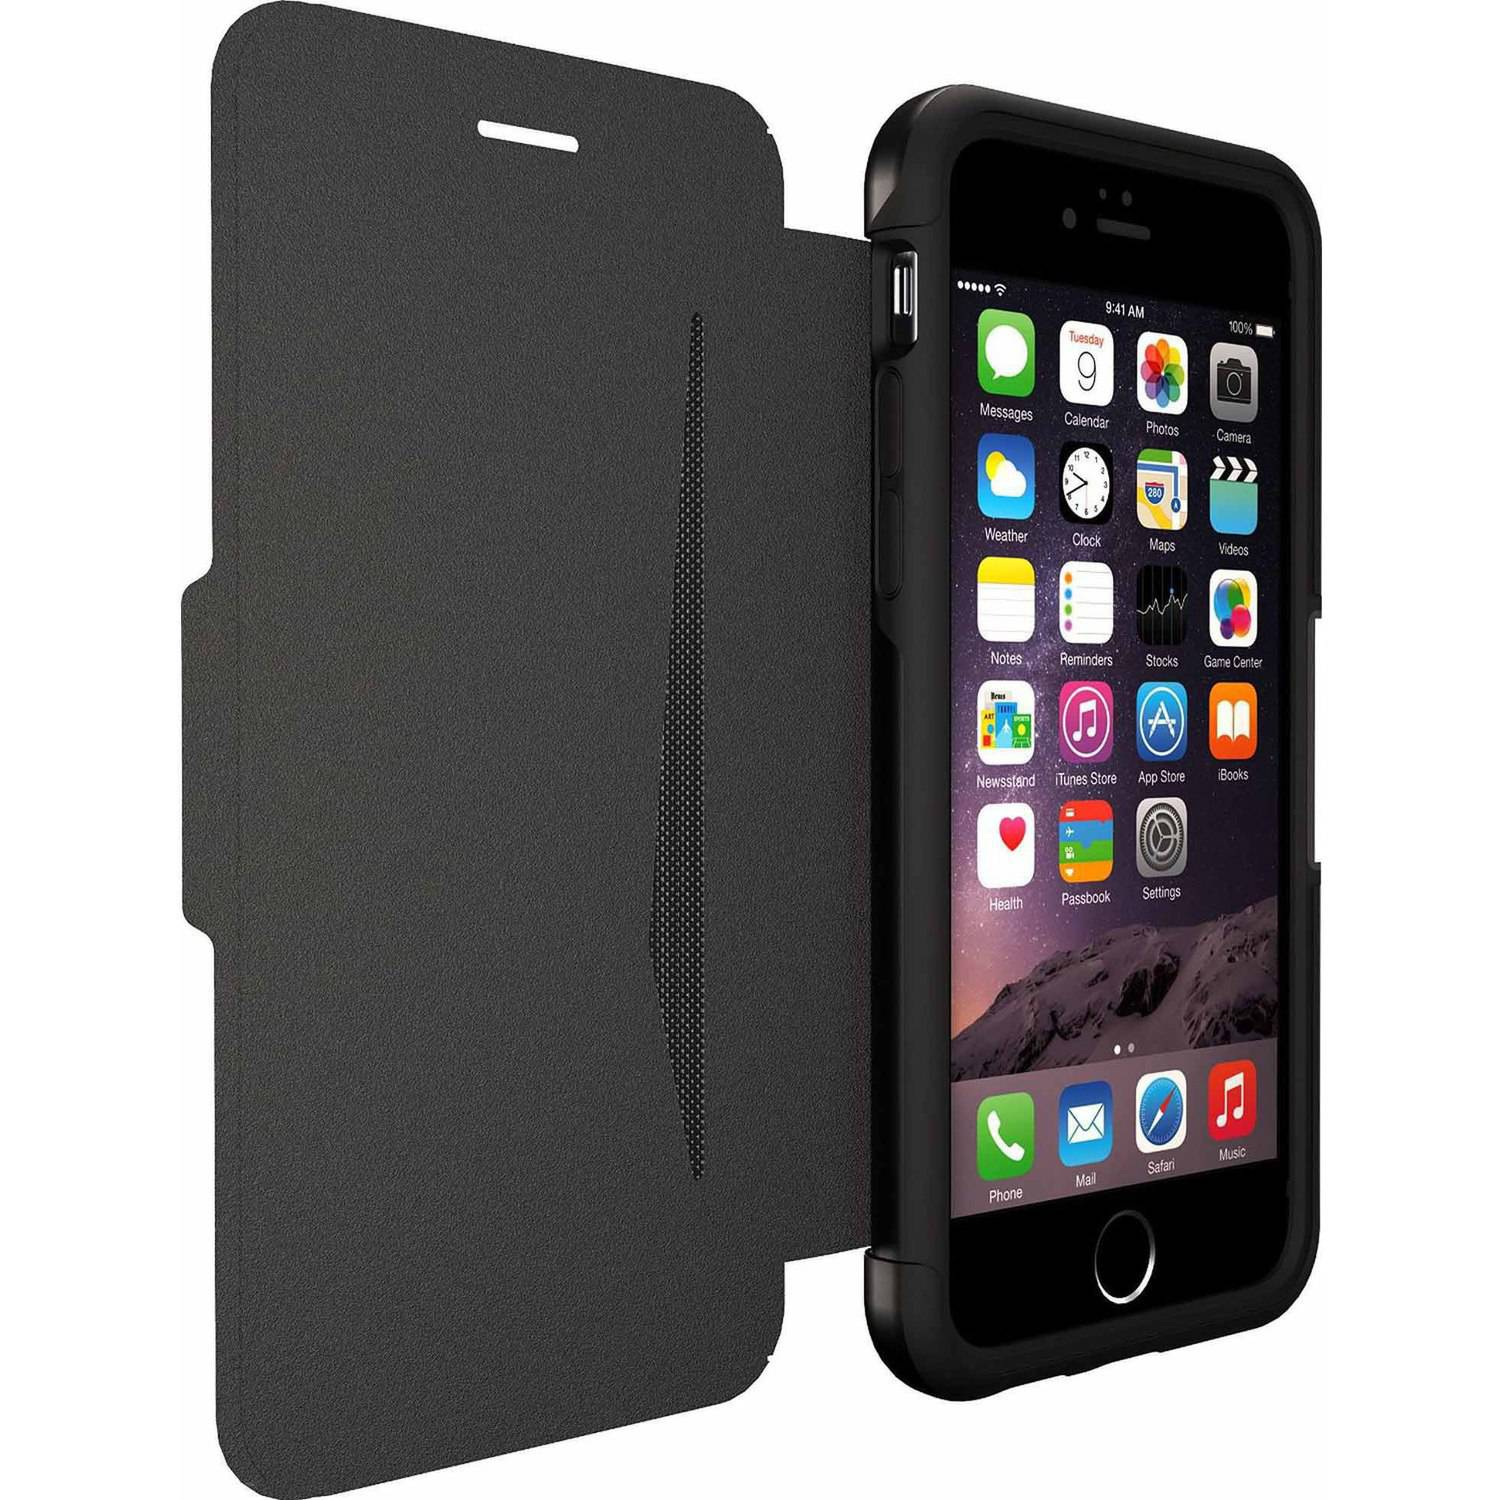 iPhone 6 Otterbox strada series carrying case for apple iphone 6, assorted colors